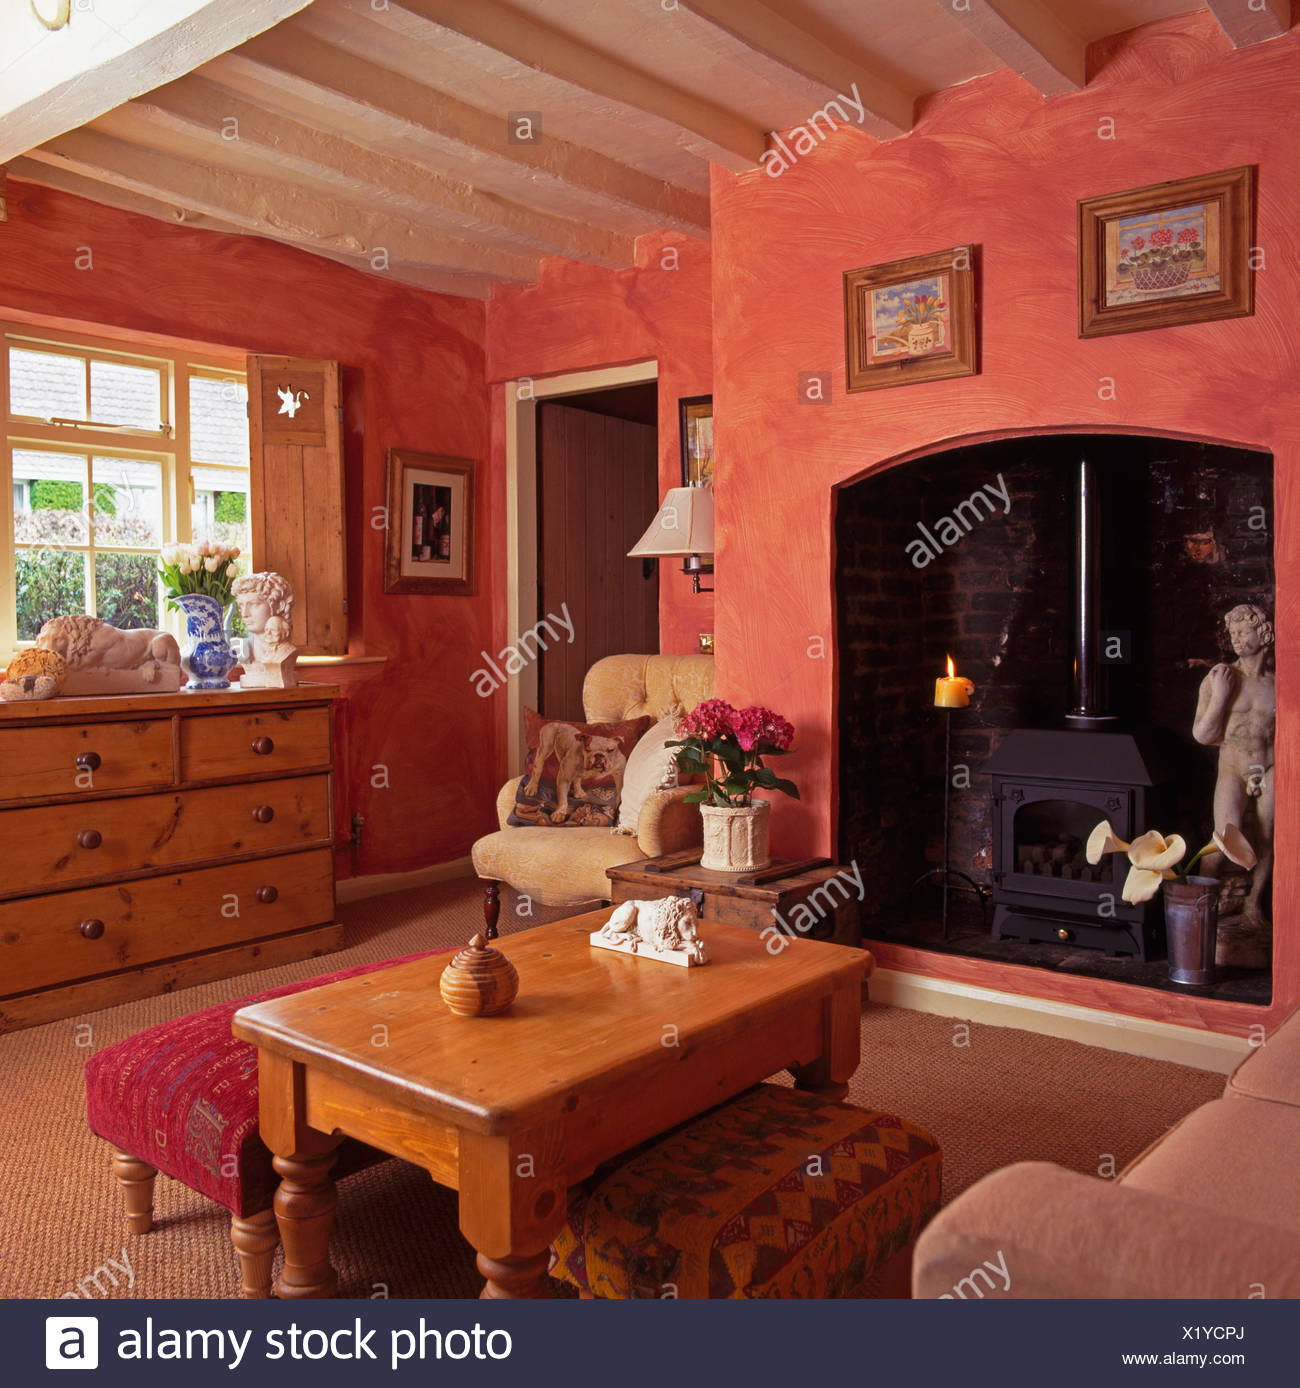 Upholstered stools and pine coffee table in terracotta pink cottage living room with wood burning stove in fireplace